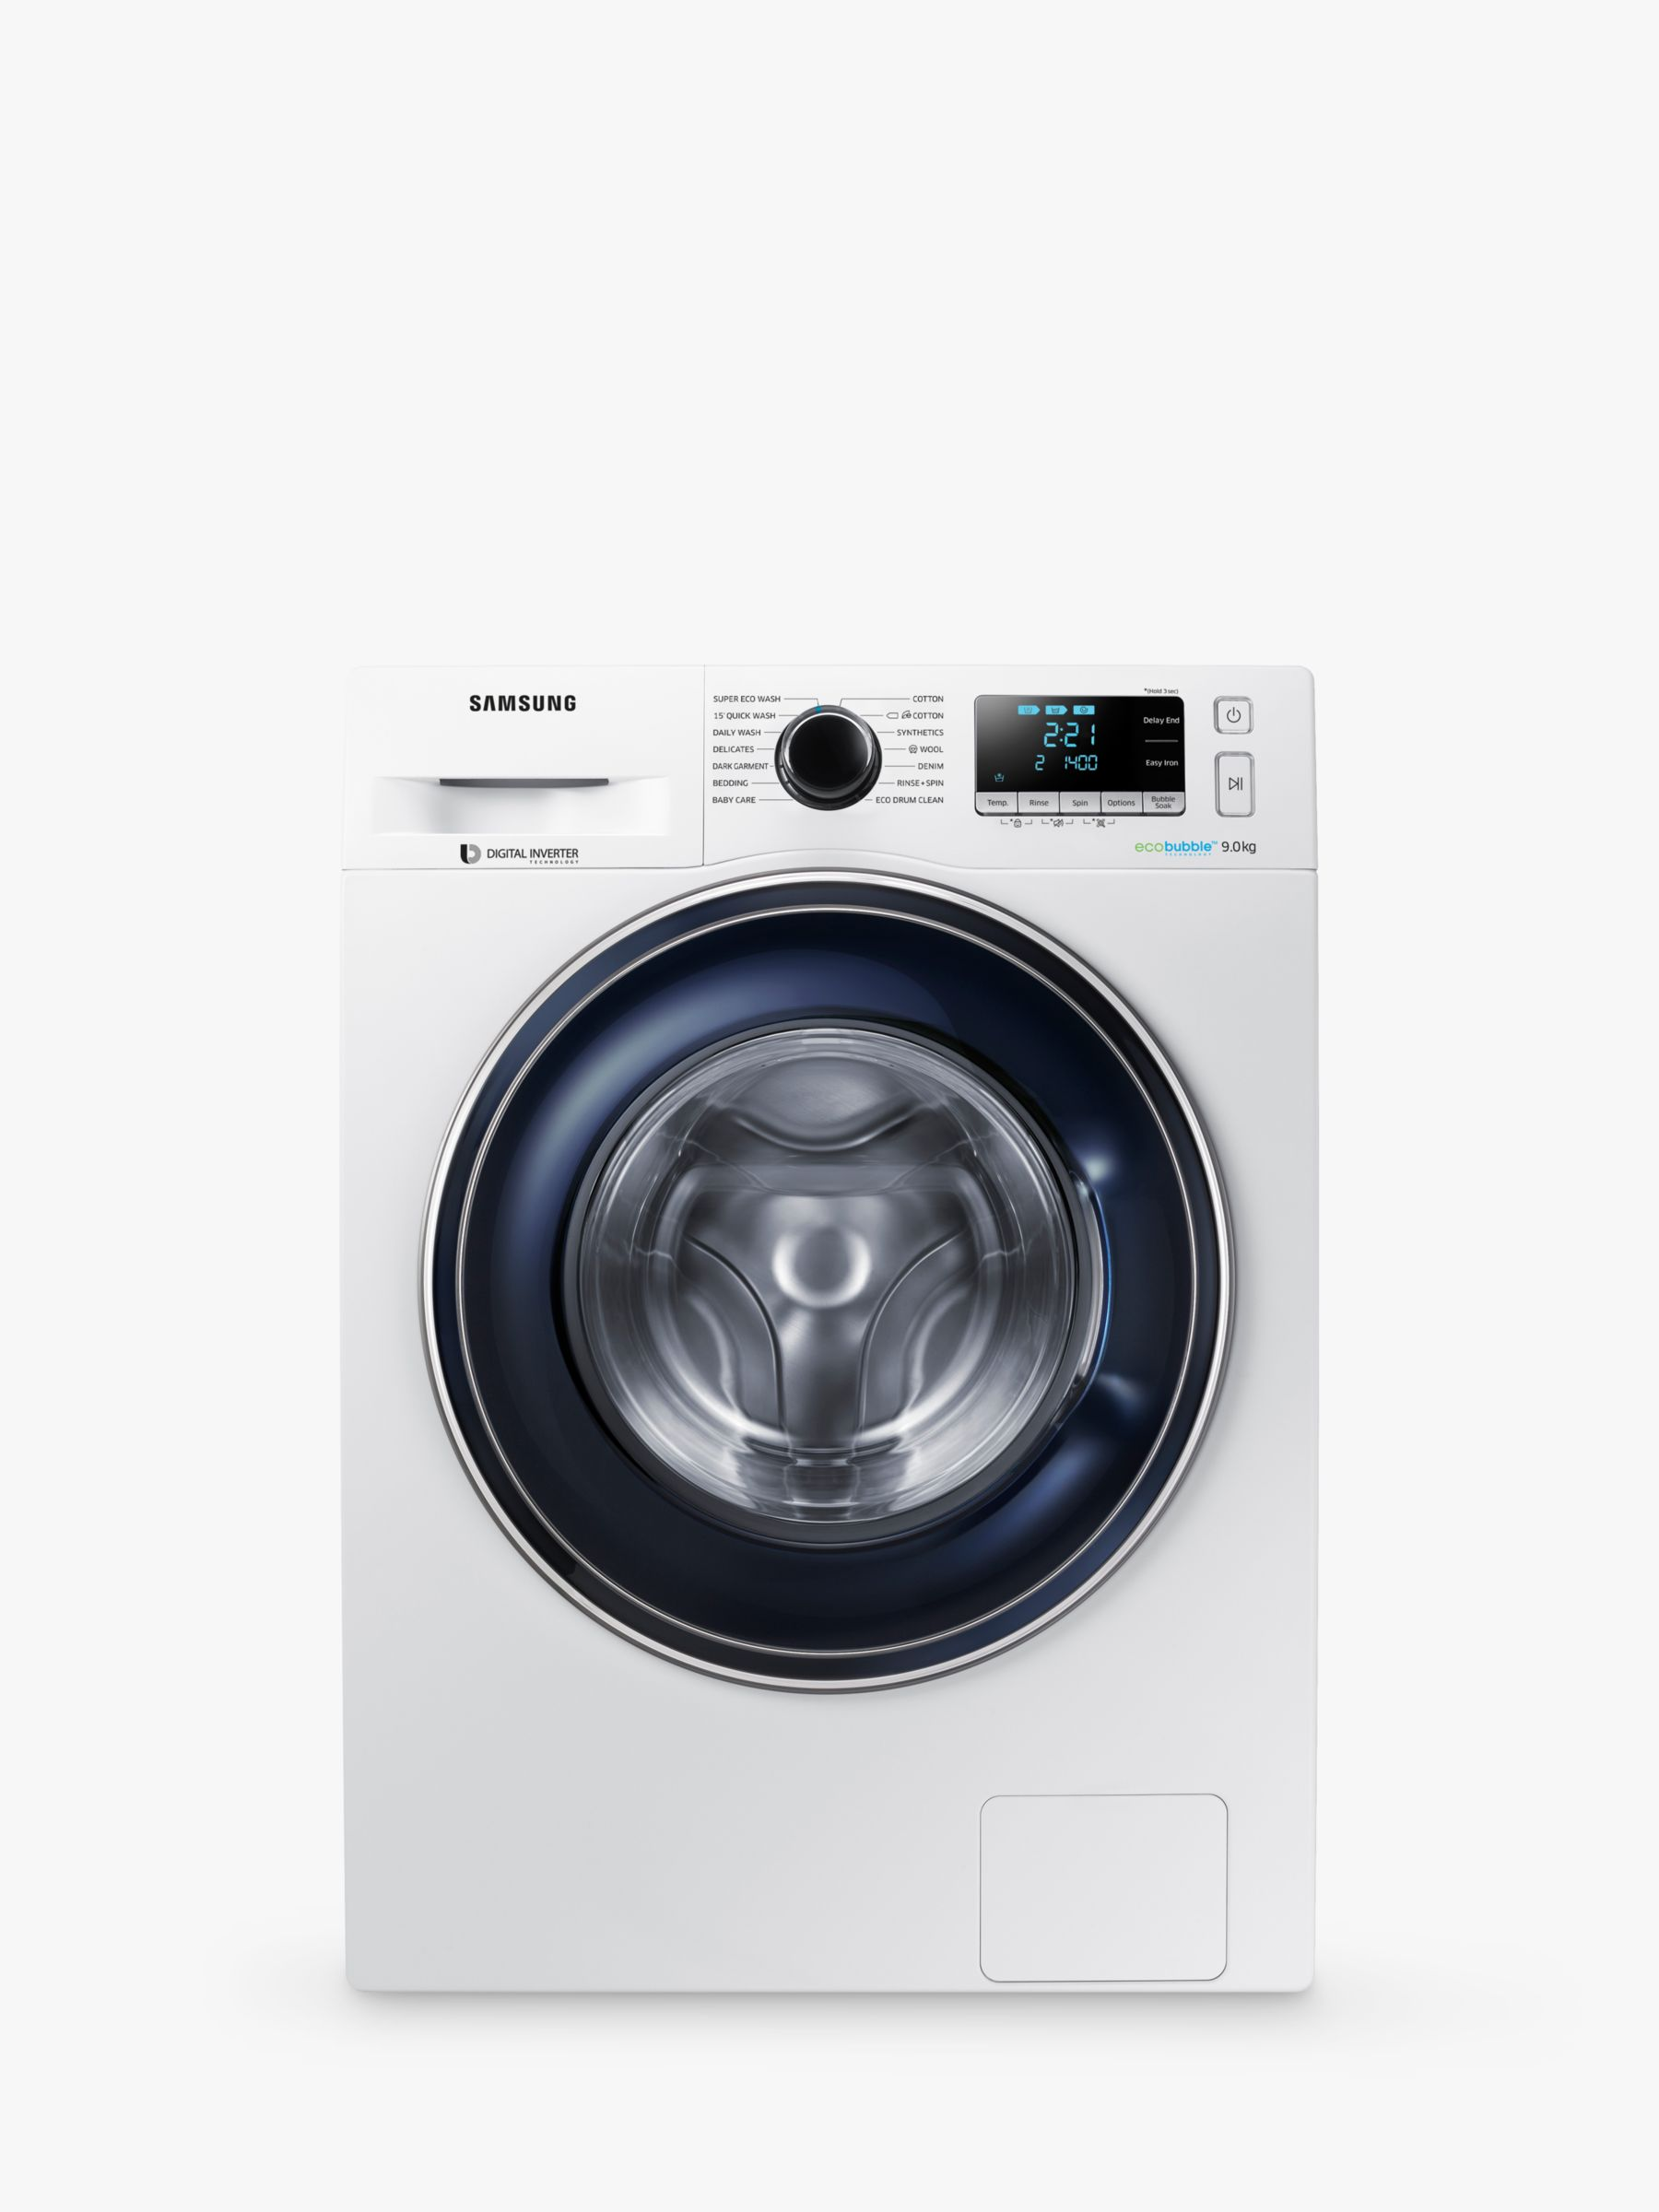 Samsung Samsung WW90J5456FW ecobubble Freestanding Washing Machine, 9kg Load, A+++ Energy Rating, 1400rpm Spin, White/Grey